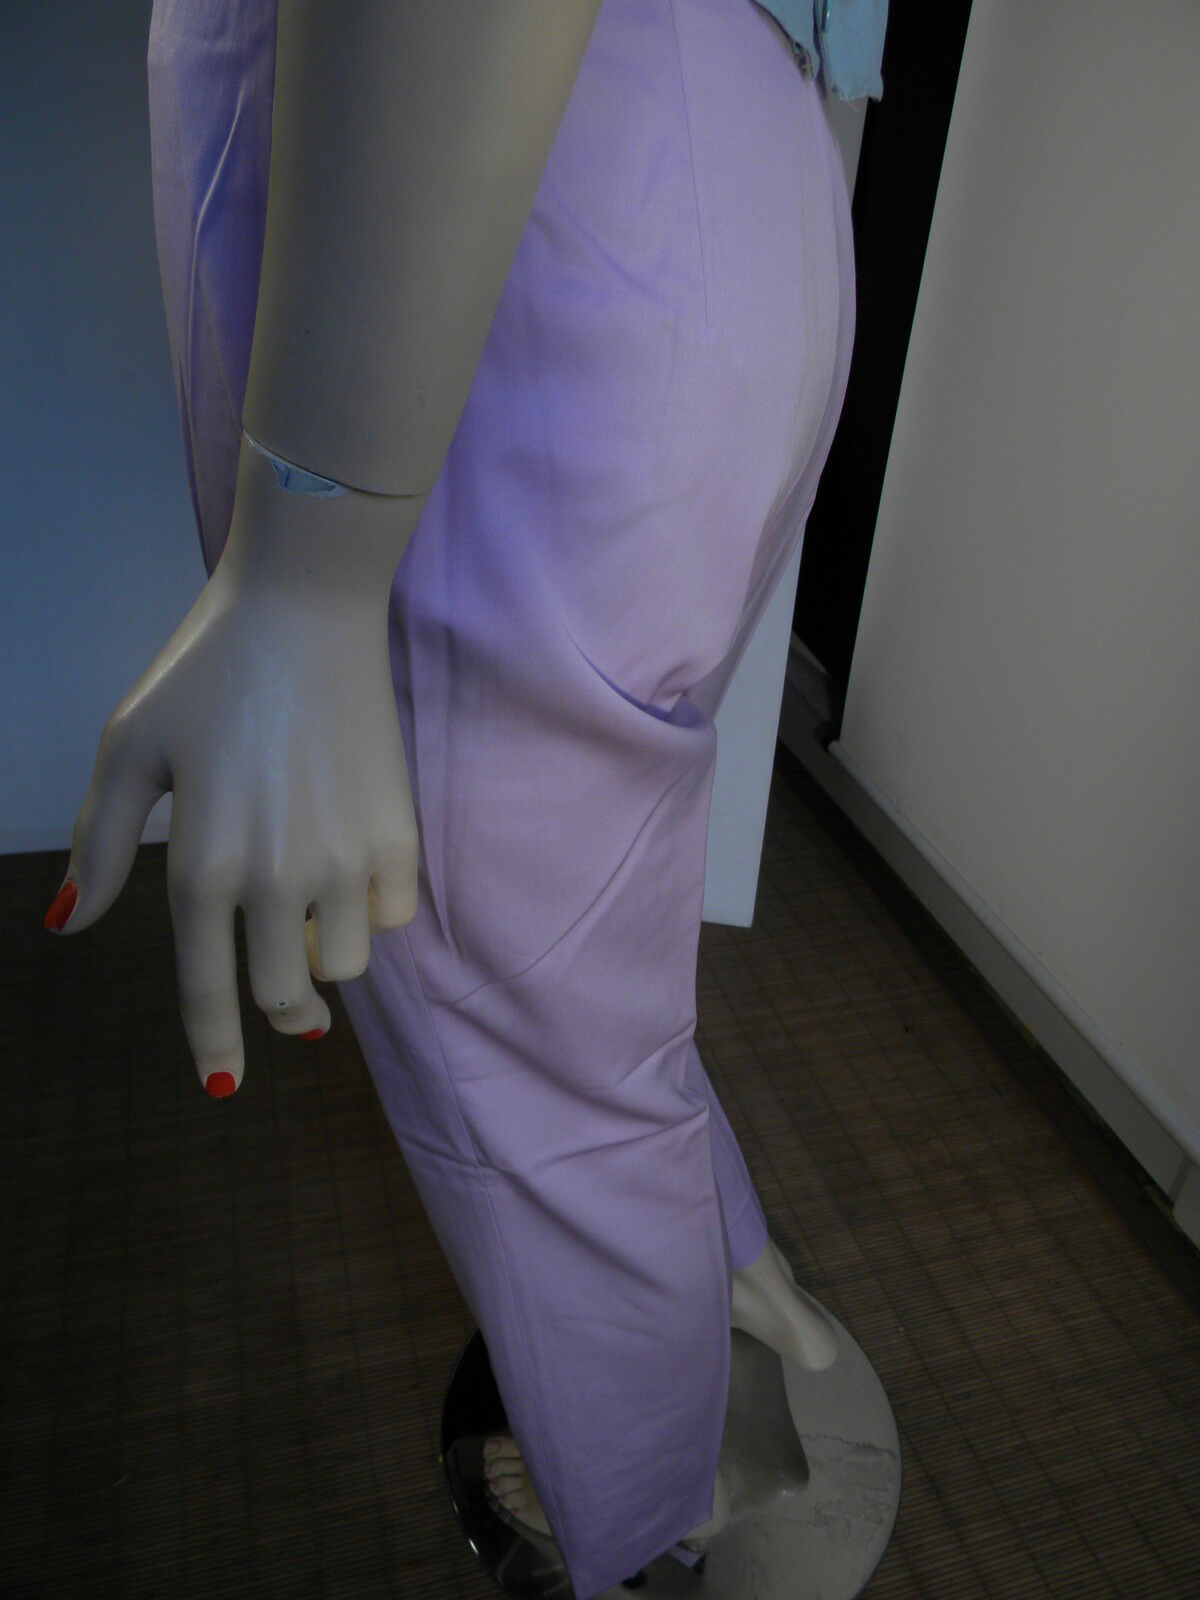 ESCADA SUBLIME PANTALON LAINE MAUVE T  38 PROVENANT D'UN DEFILE DE MODE RARE